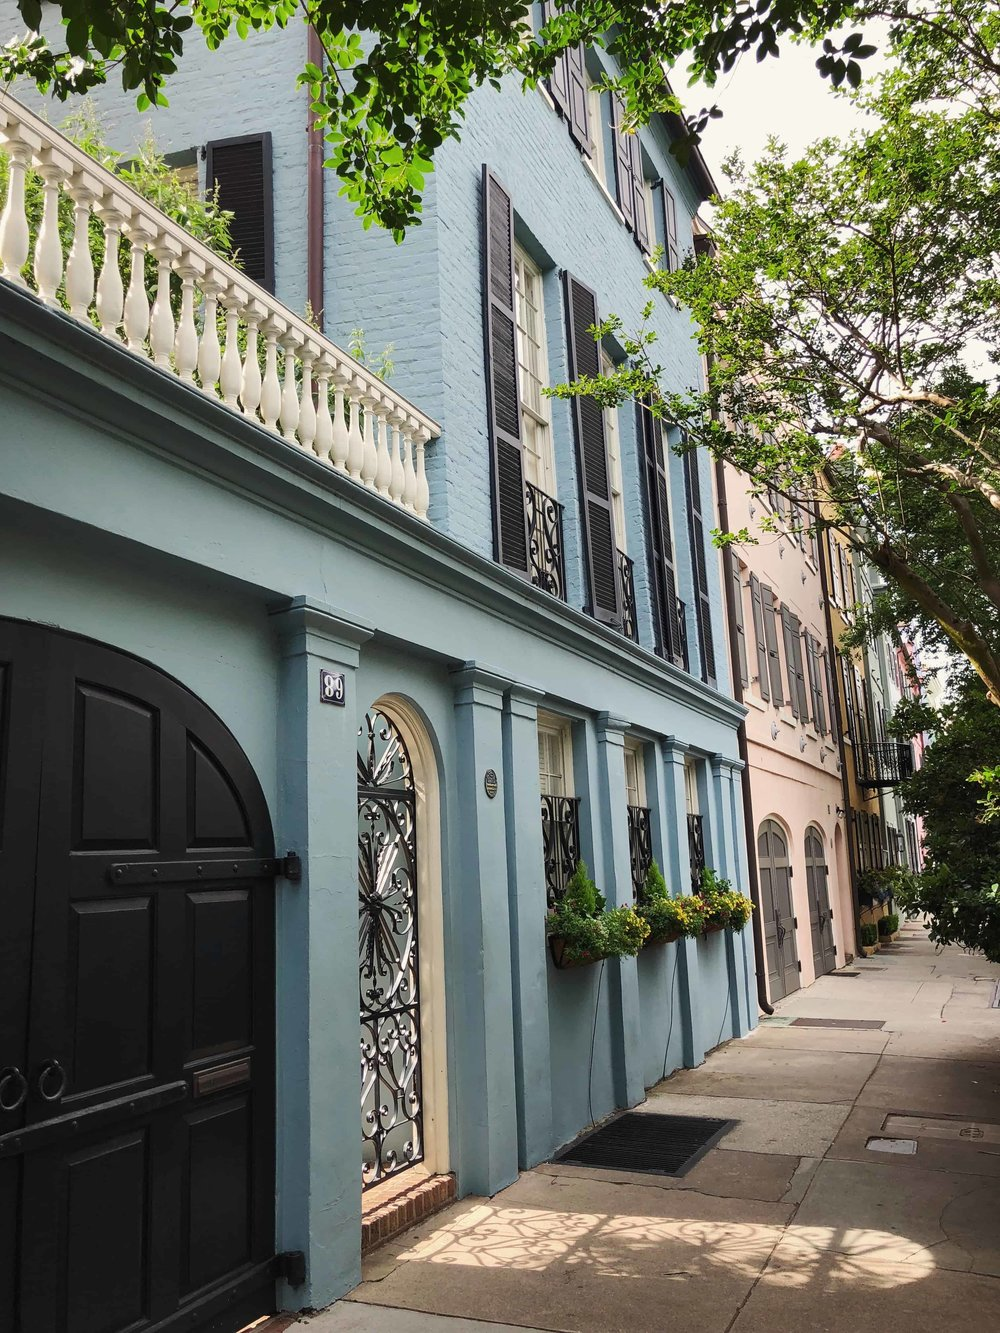 charleston-sc-city-guide-what-to-do-and-see-2.jpg